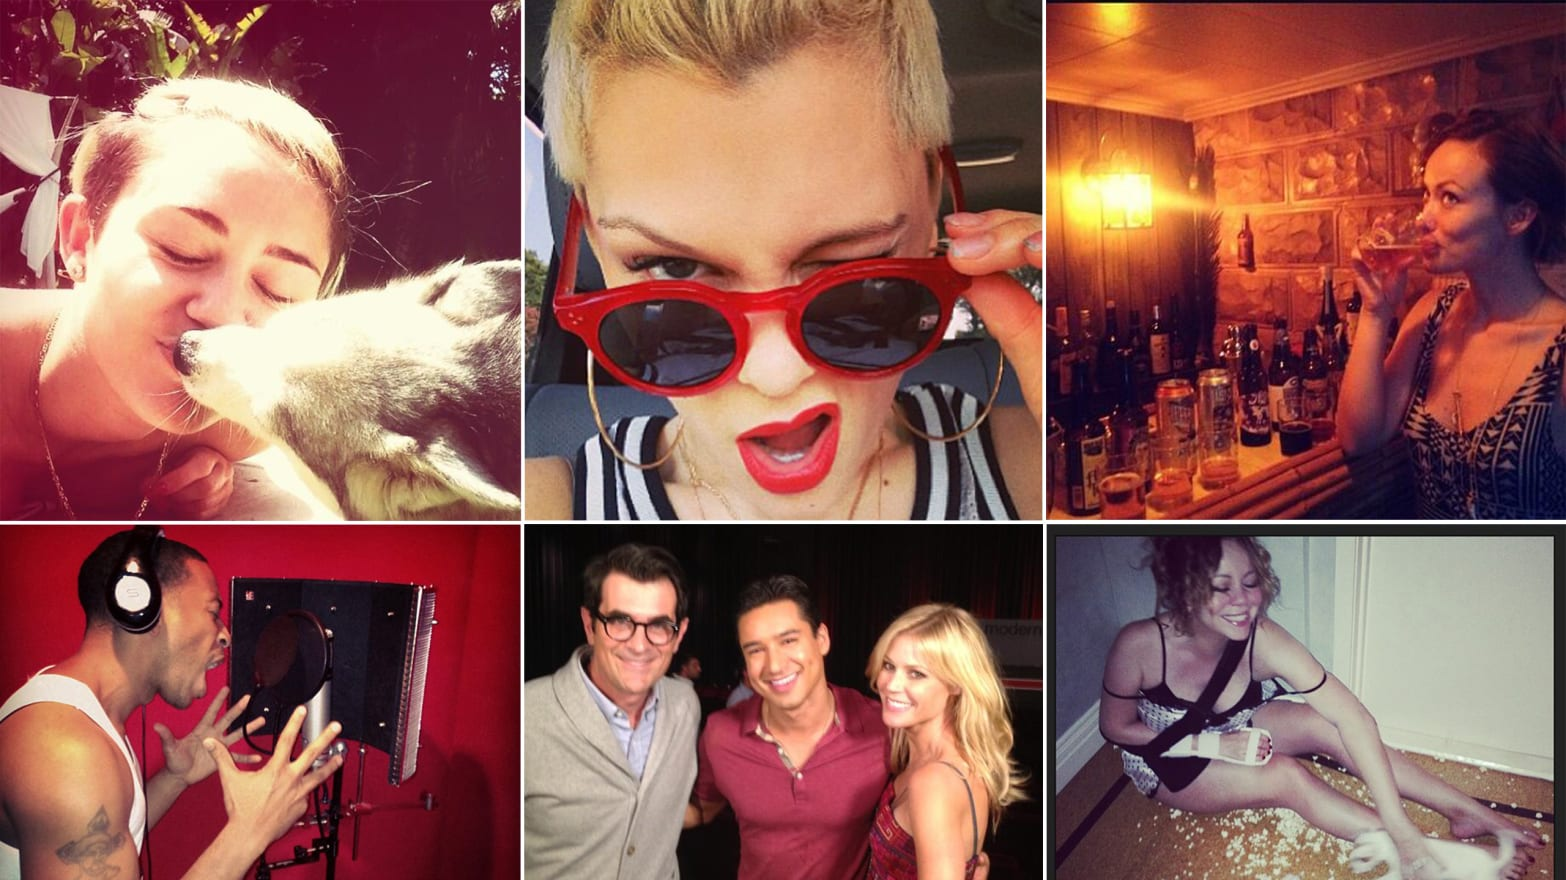 Lady Gaga, Olivia Wilde & More Celebrity Twitter Pictures (PHOTOS)